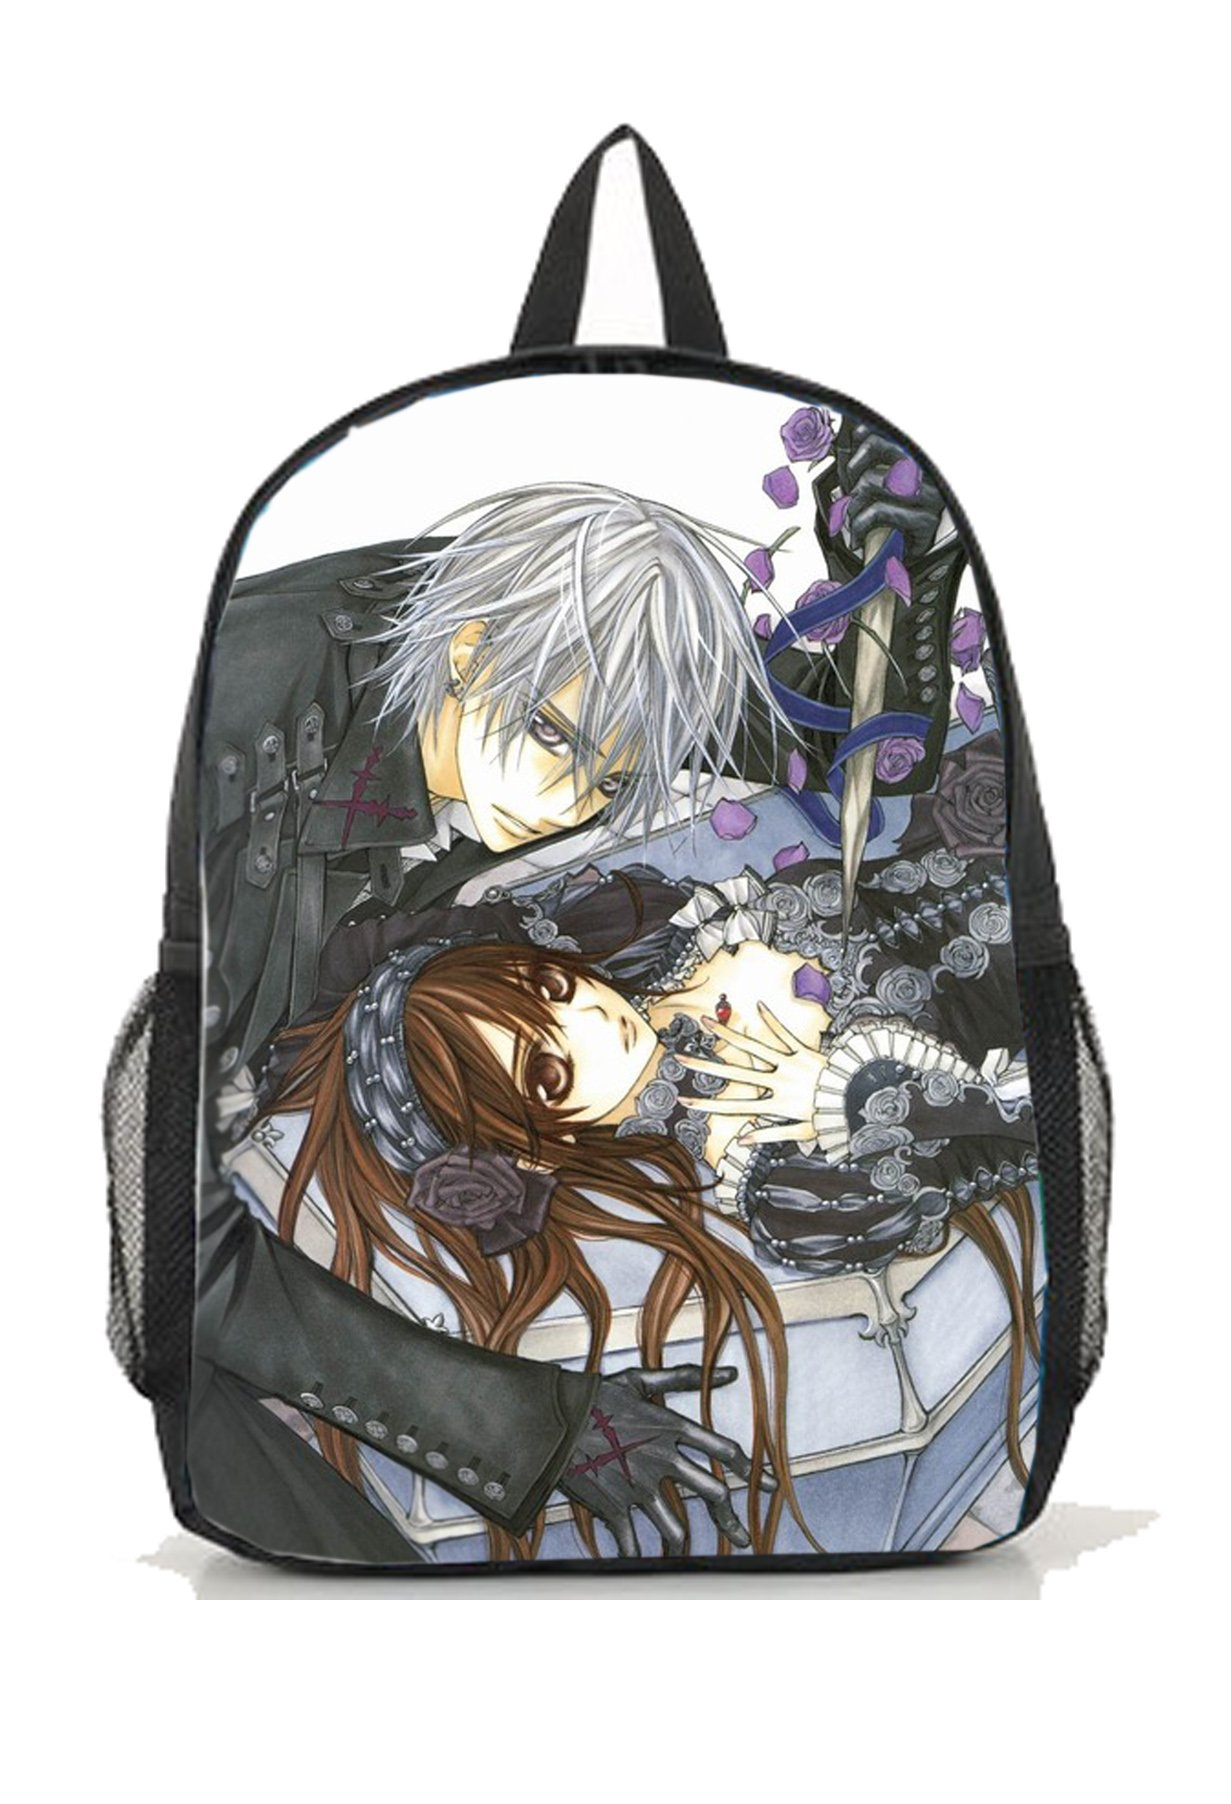 Dreamcosplay Anime Vampire Knight Logo Backpack Book Bag